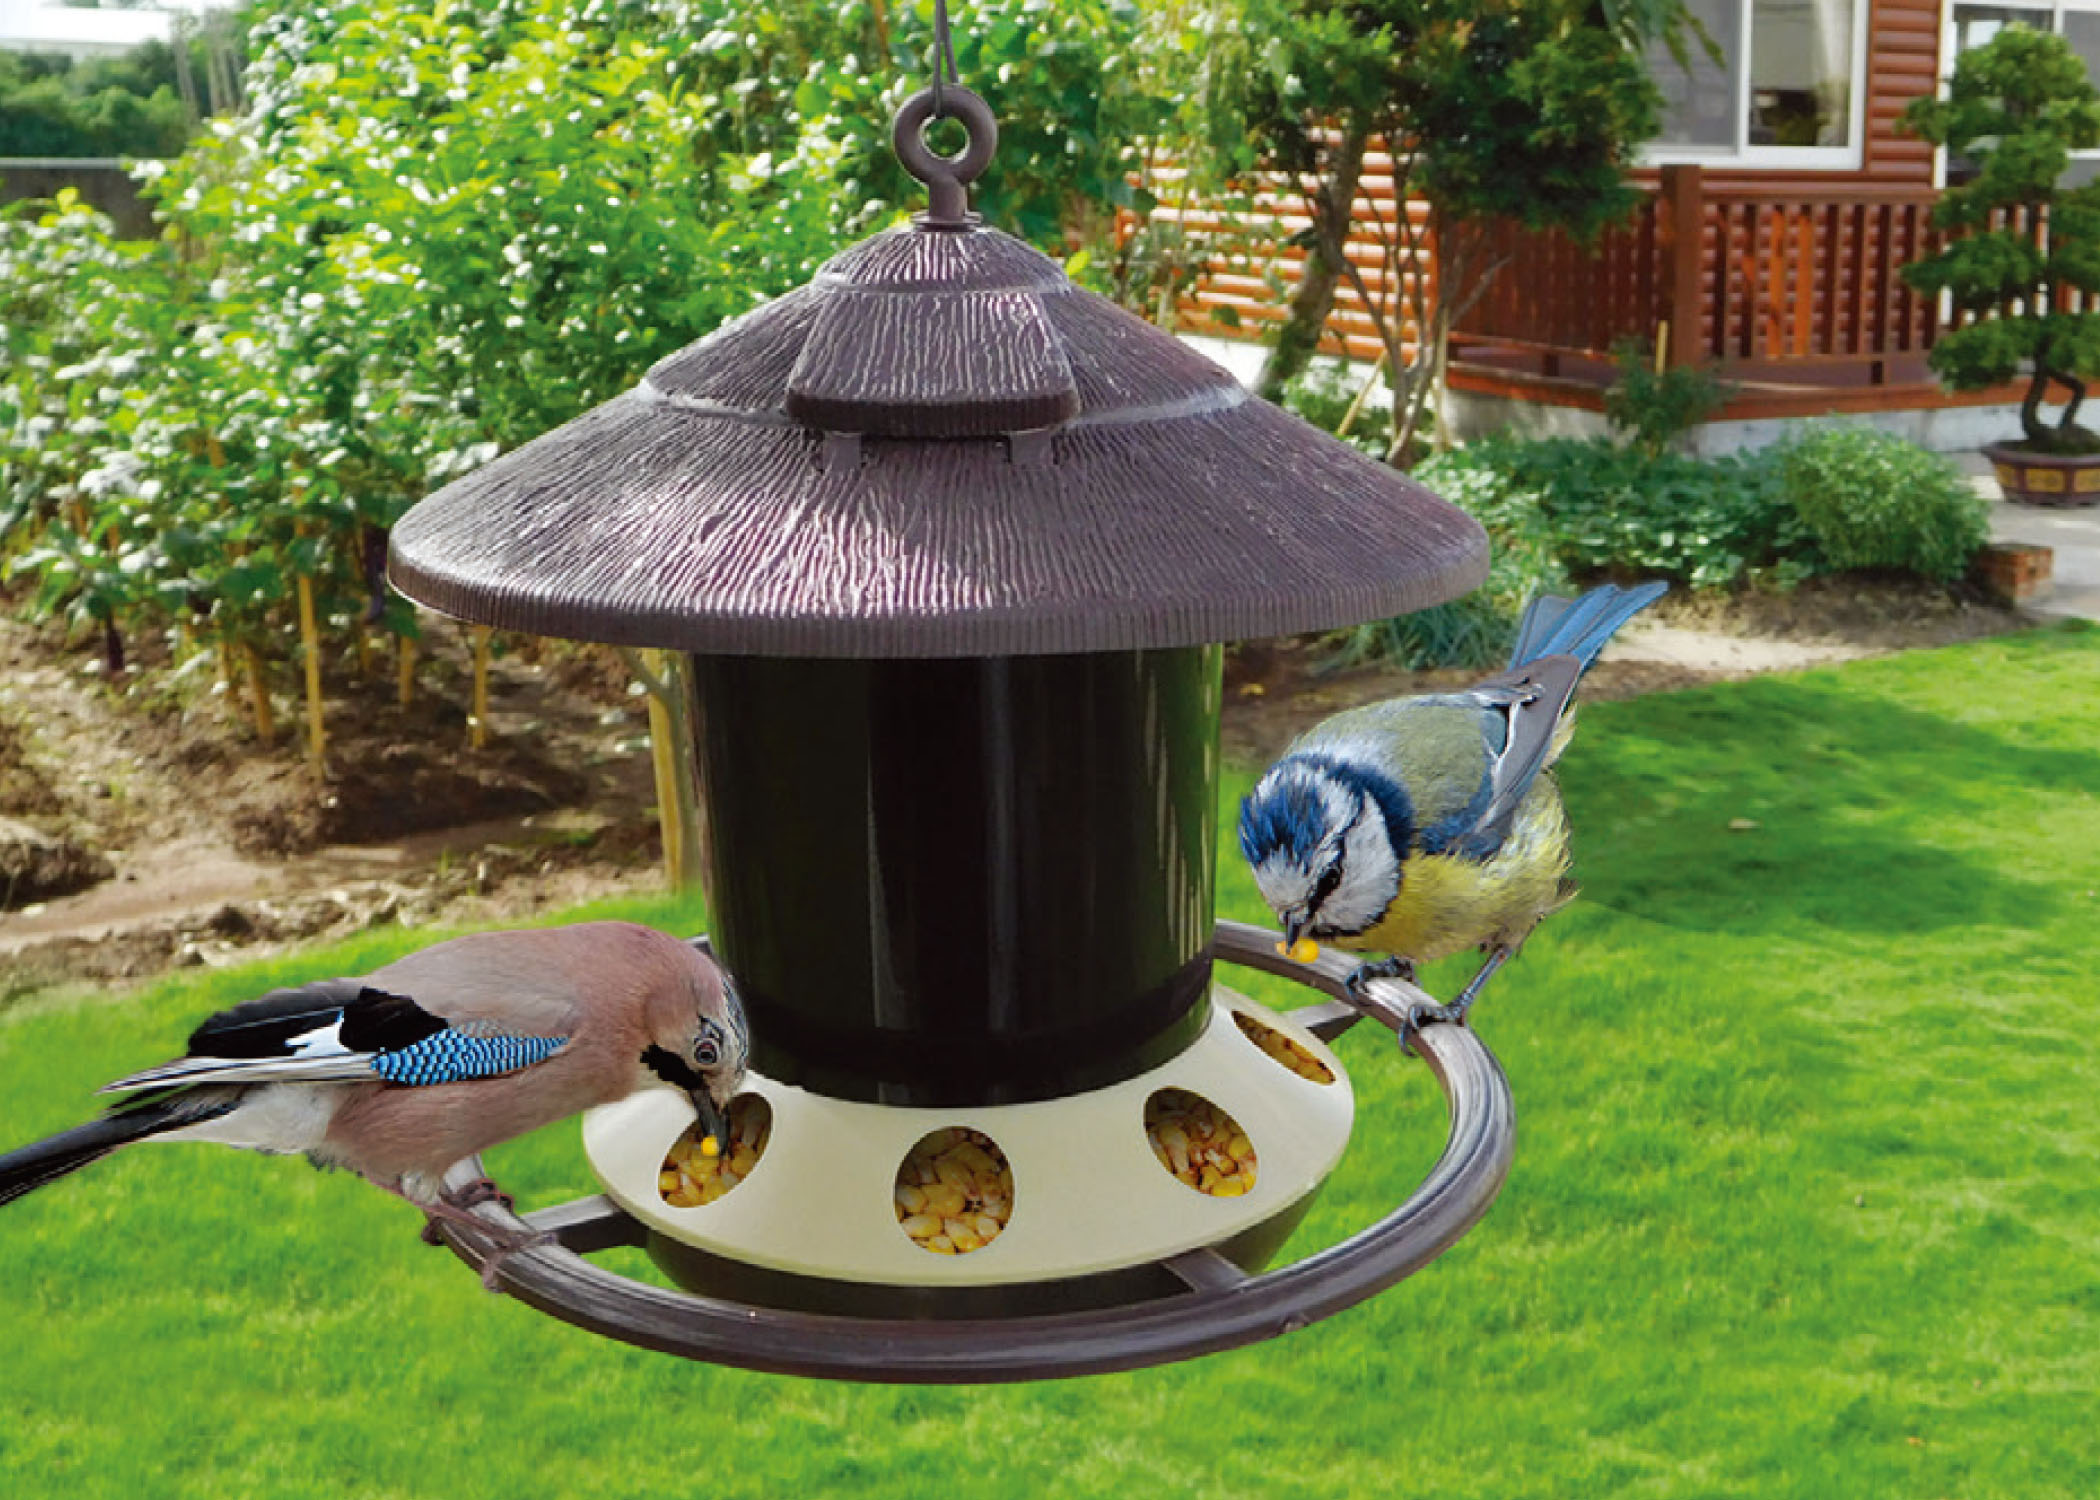 Bird Feeder D-450 1.23-lb Capacity